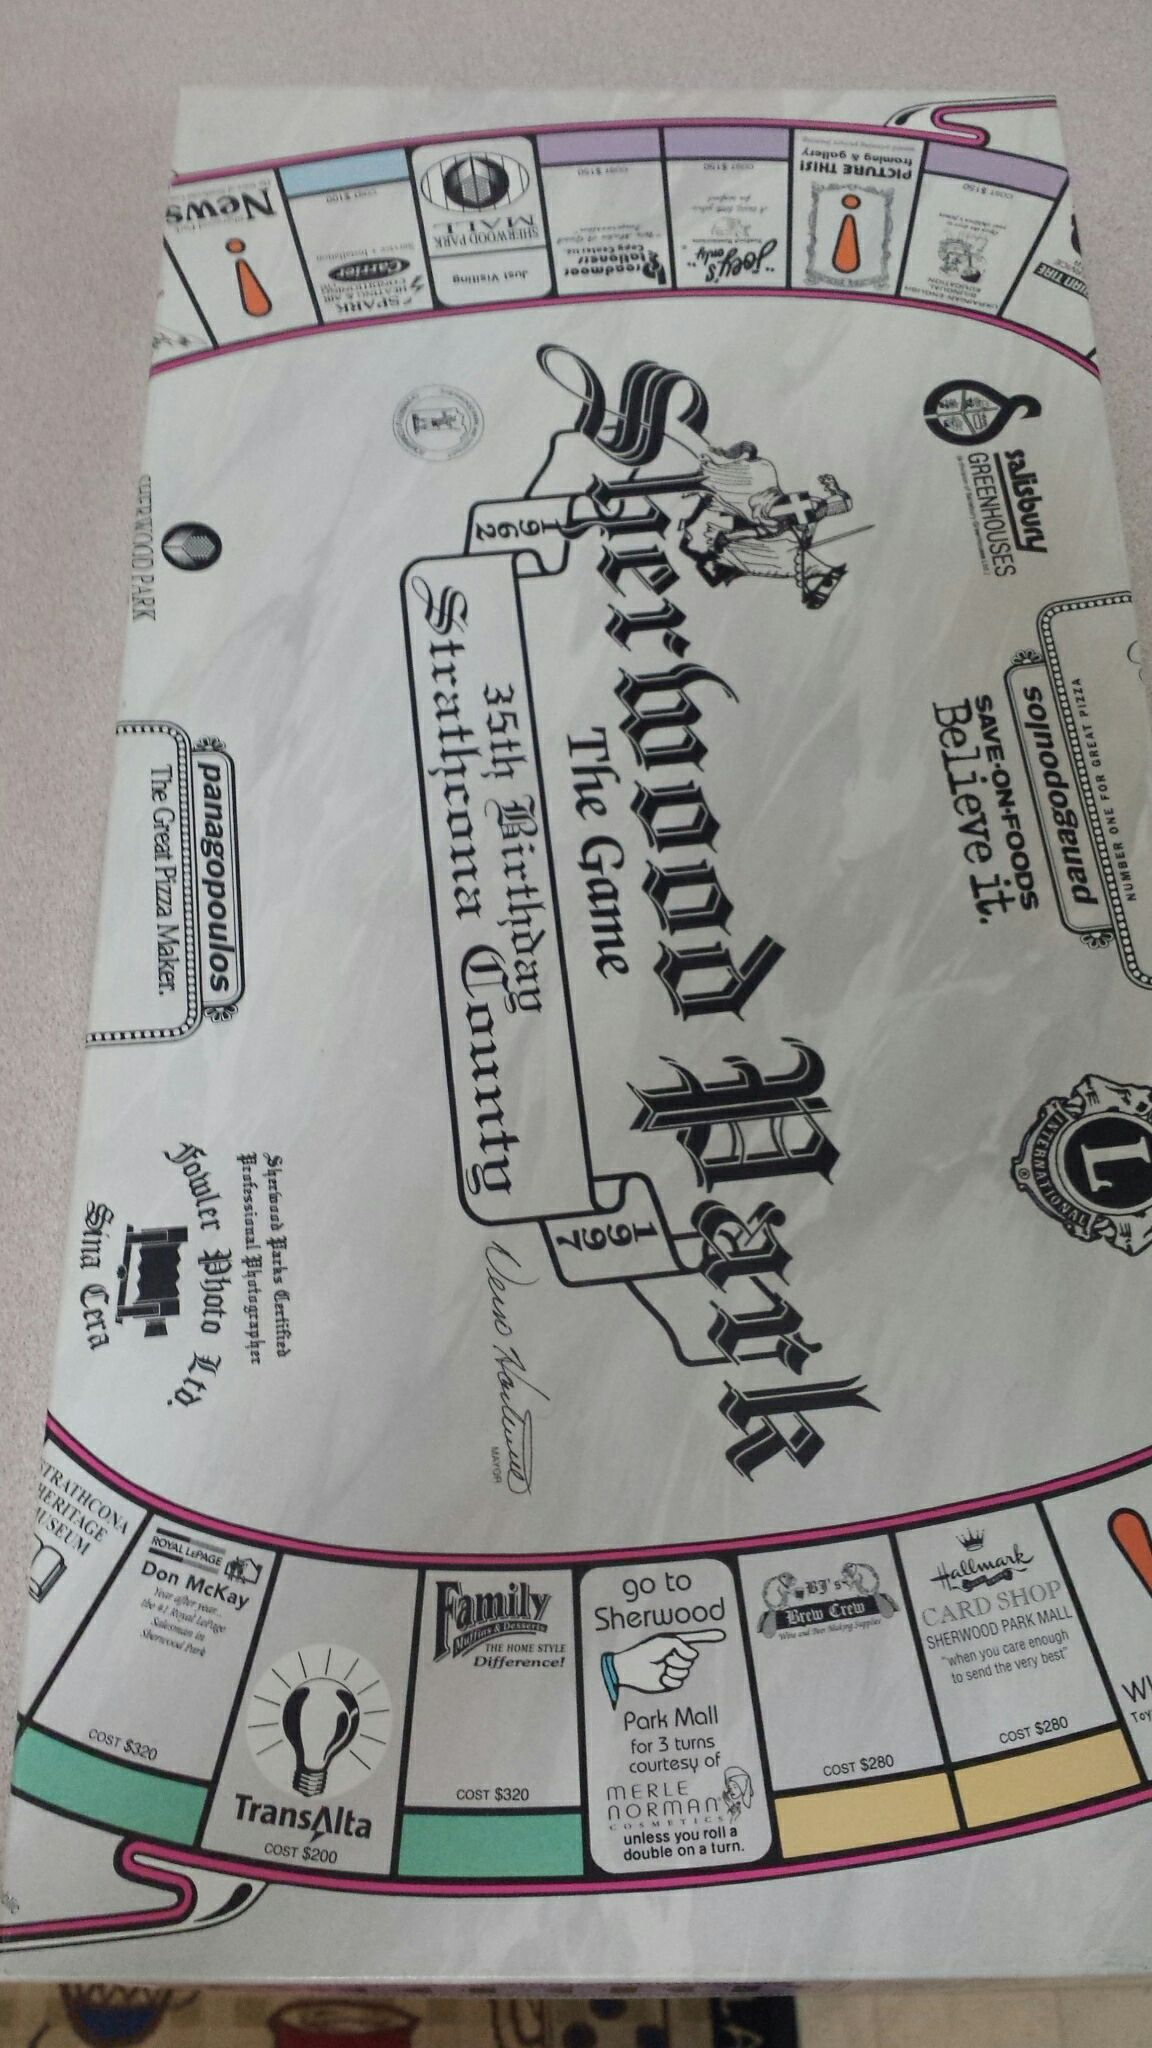 Monopoly Sherwood Park Board Game front image (front cover)